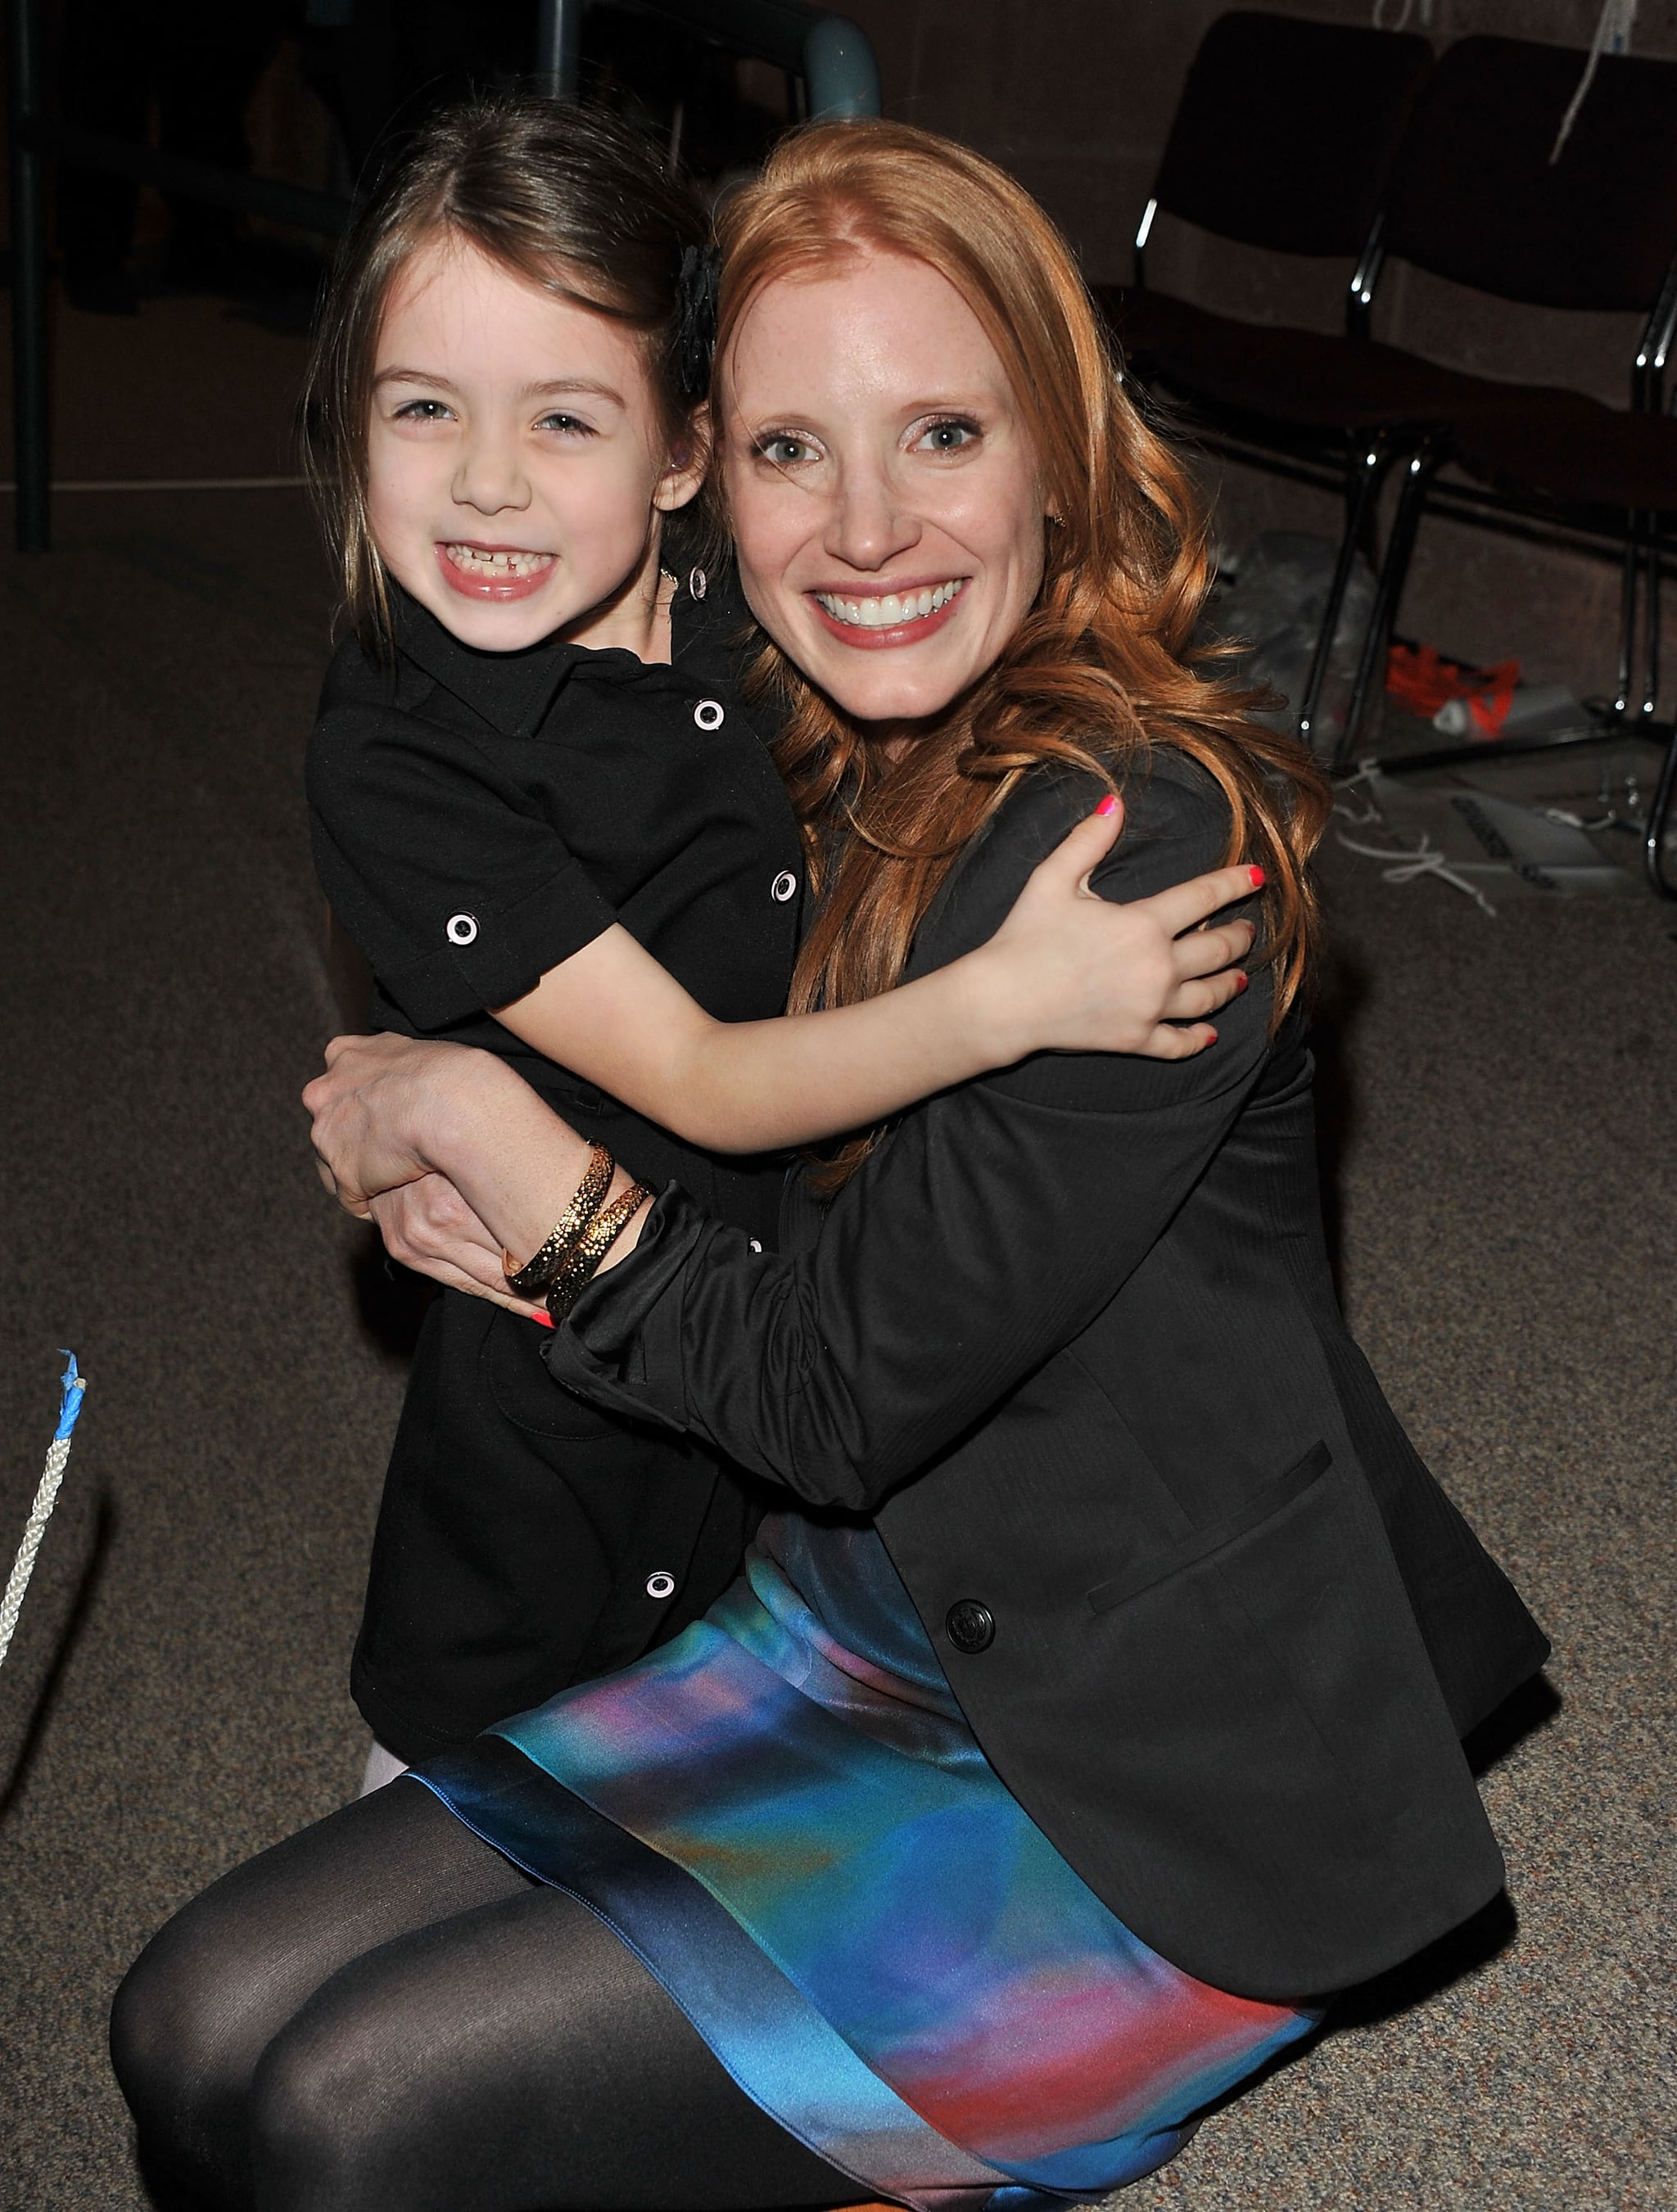 Jessica Chastain posed with her tiny costar at the Take Shelter premiere in 2011.